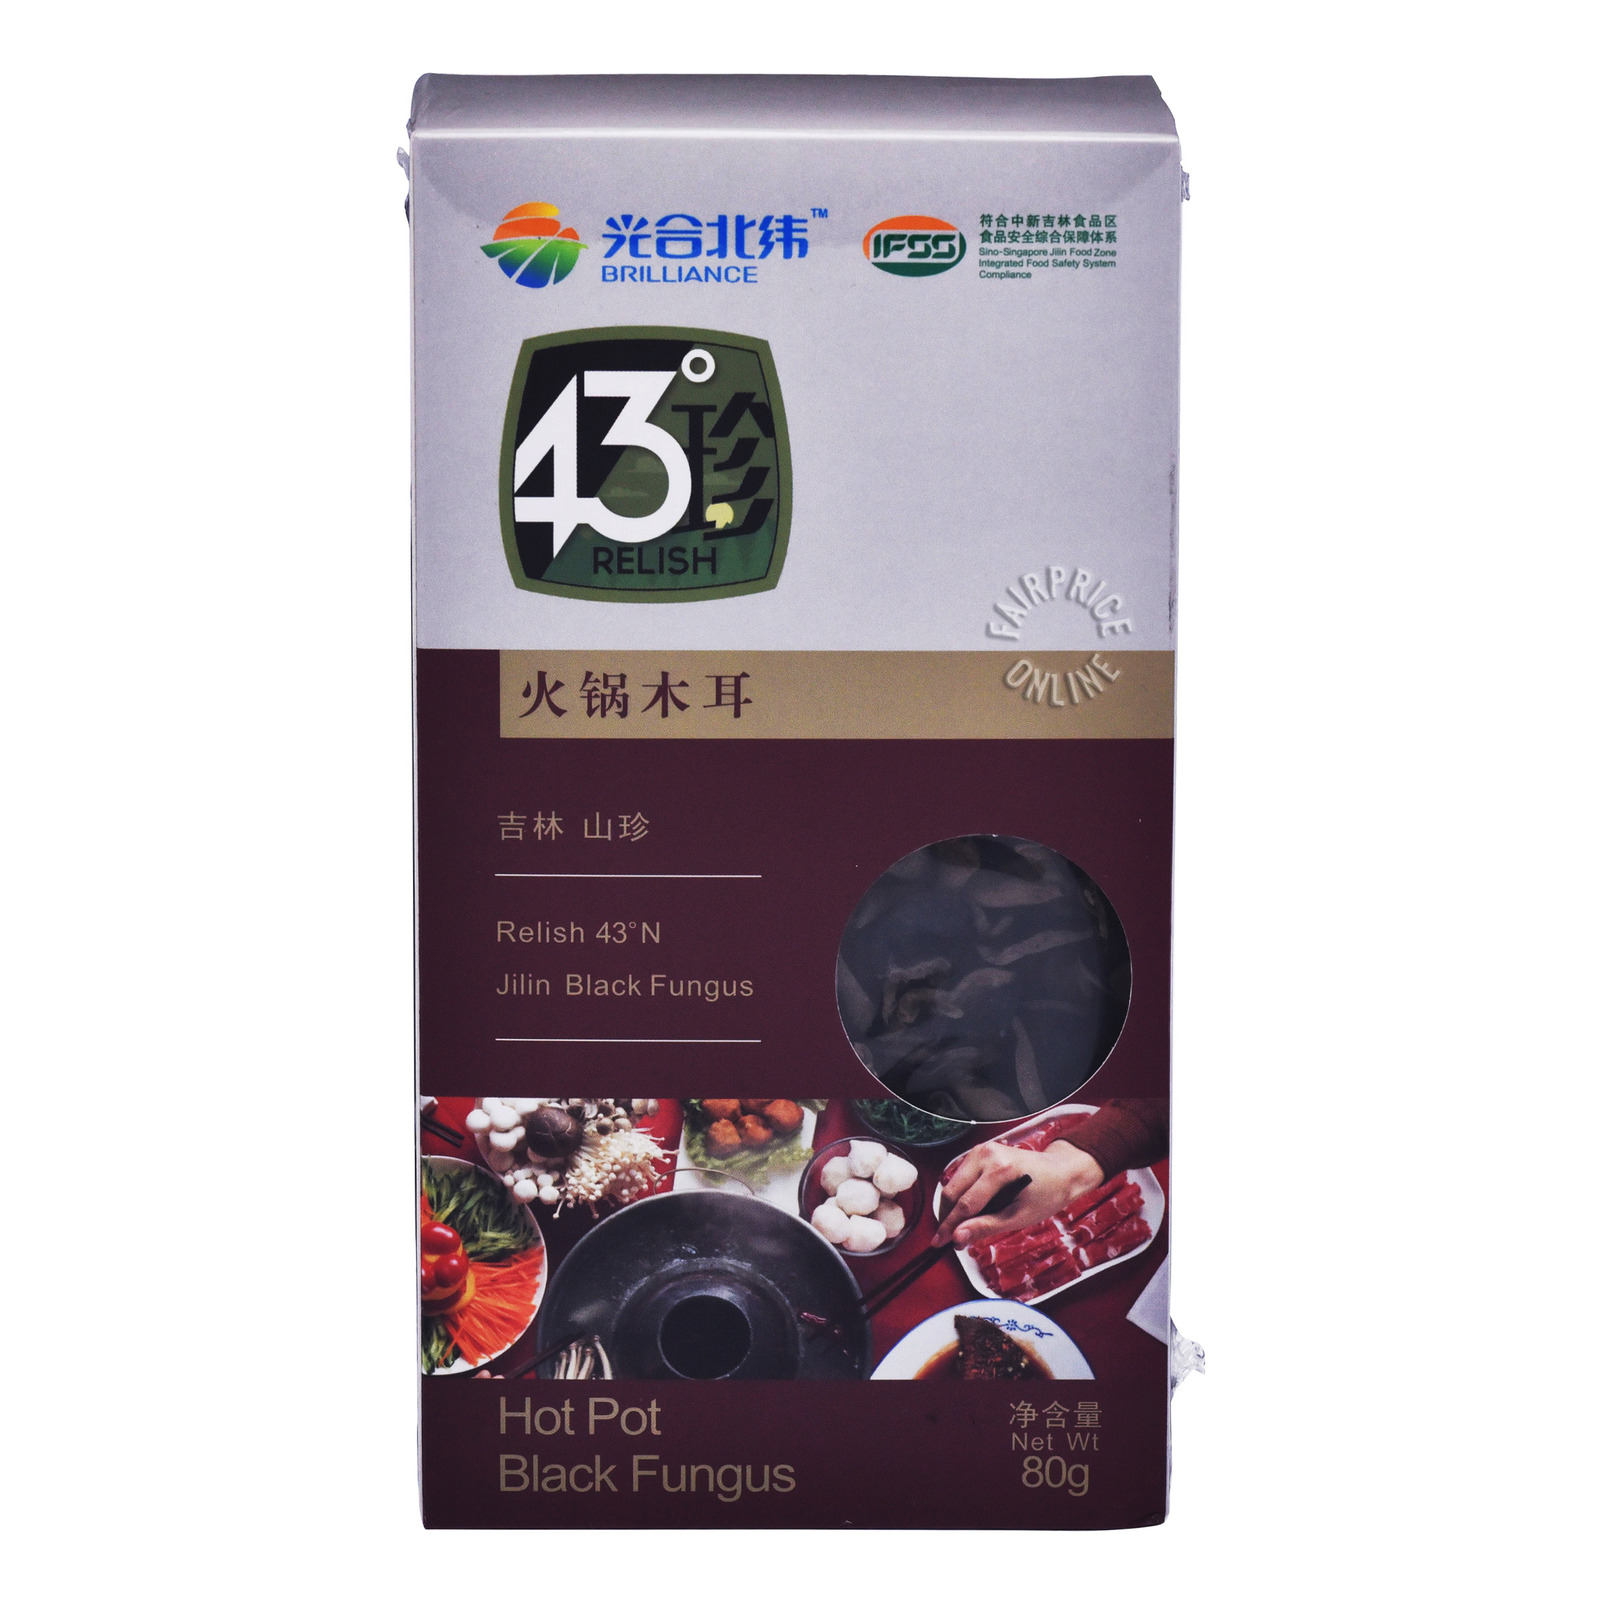 Brilliance 43° Relish Series Jilin Black Fungus - Hot Pot